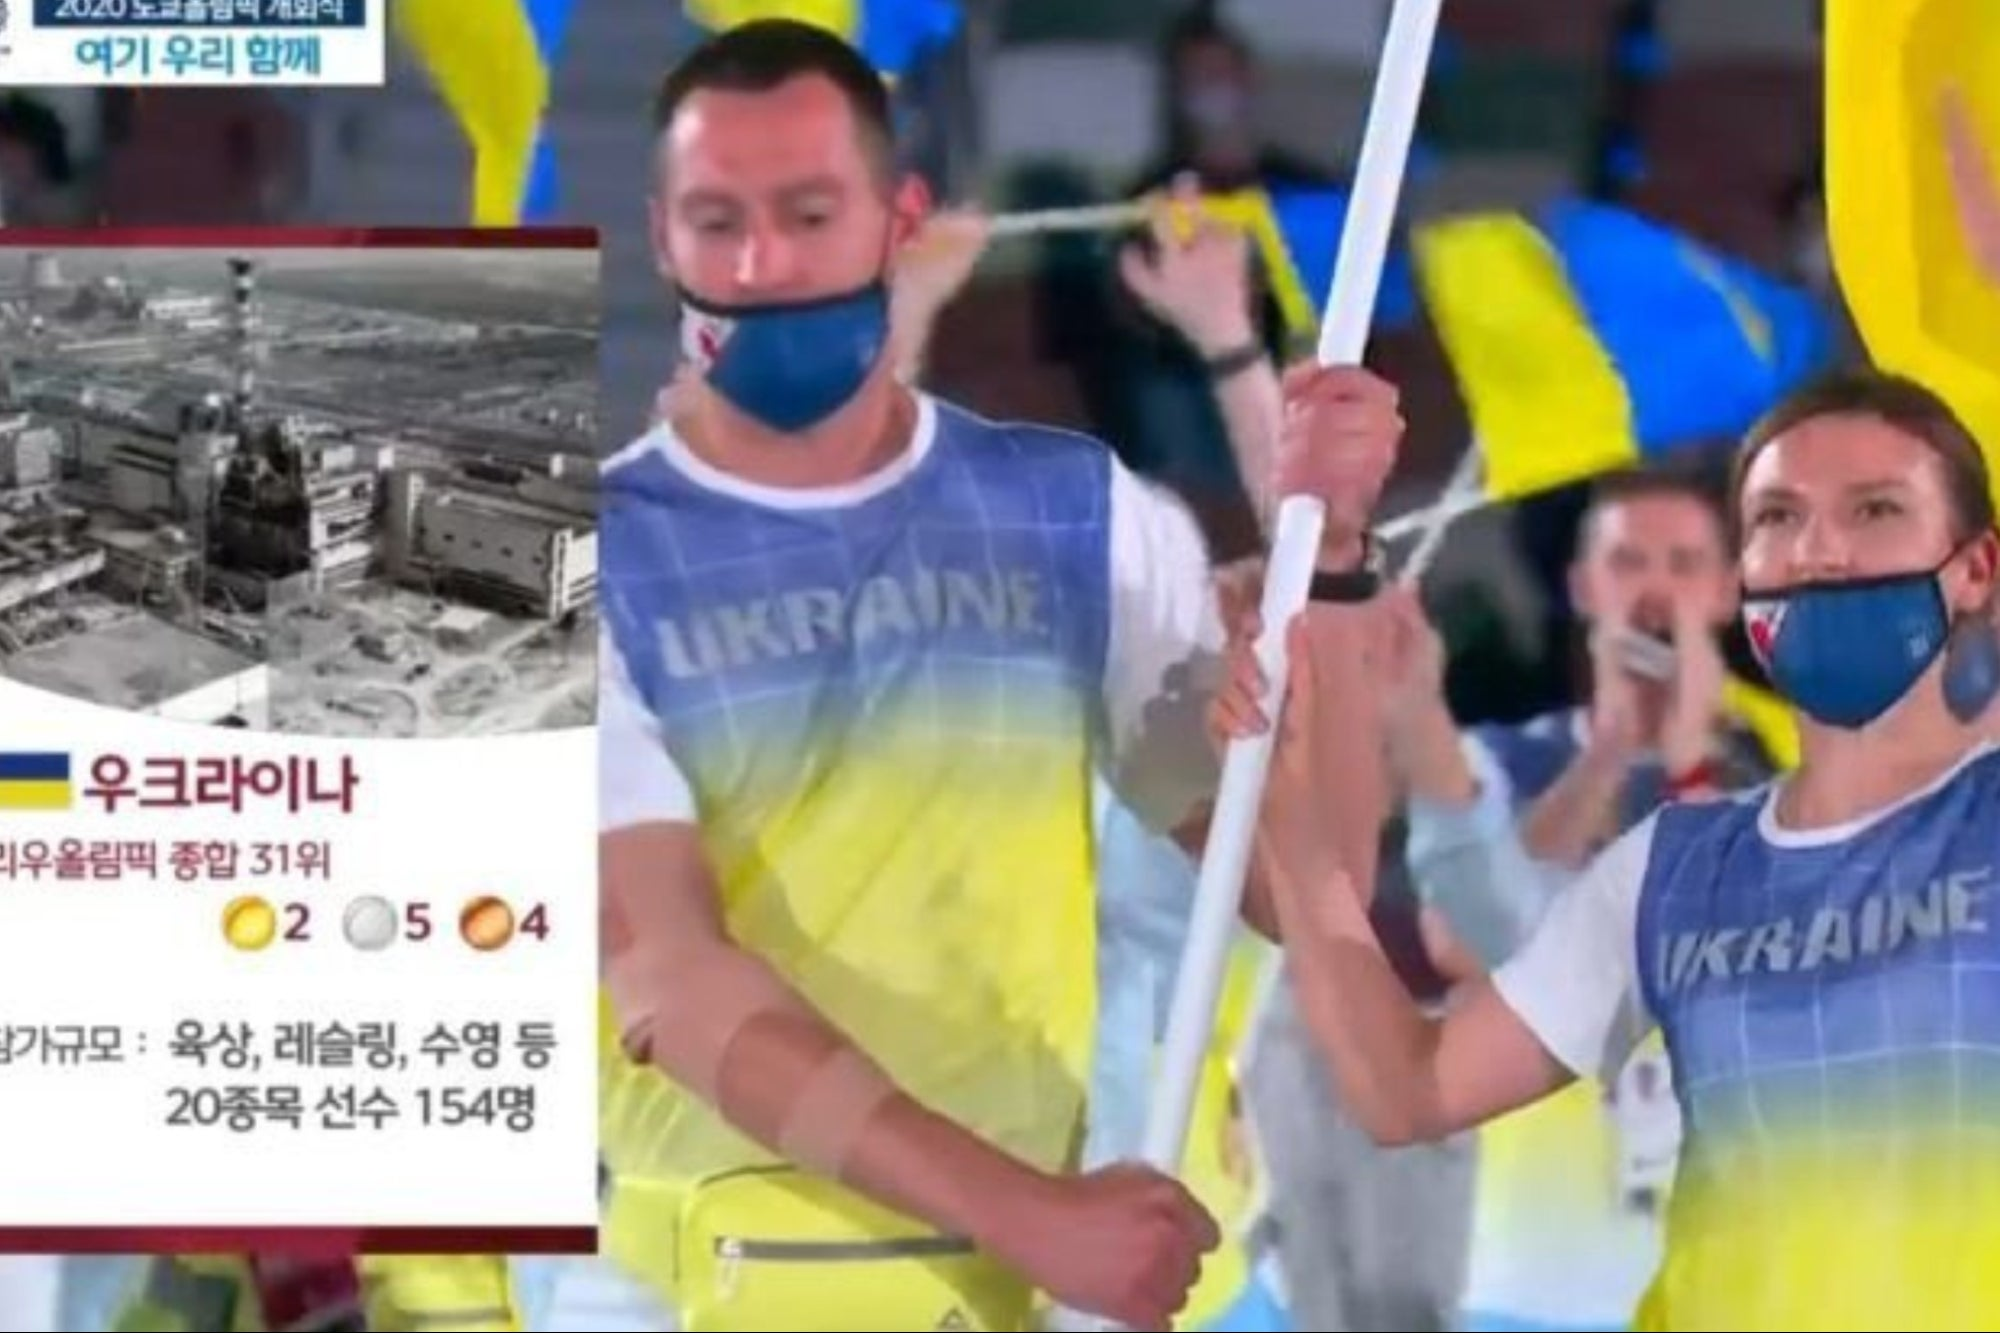 Taco Bell type tacos for Mexico and Chernobyl for Ukraine: South Korean Channel apologizes for its representations of the countries at the opening of the Olympic Games